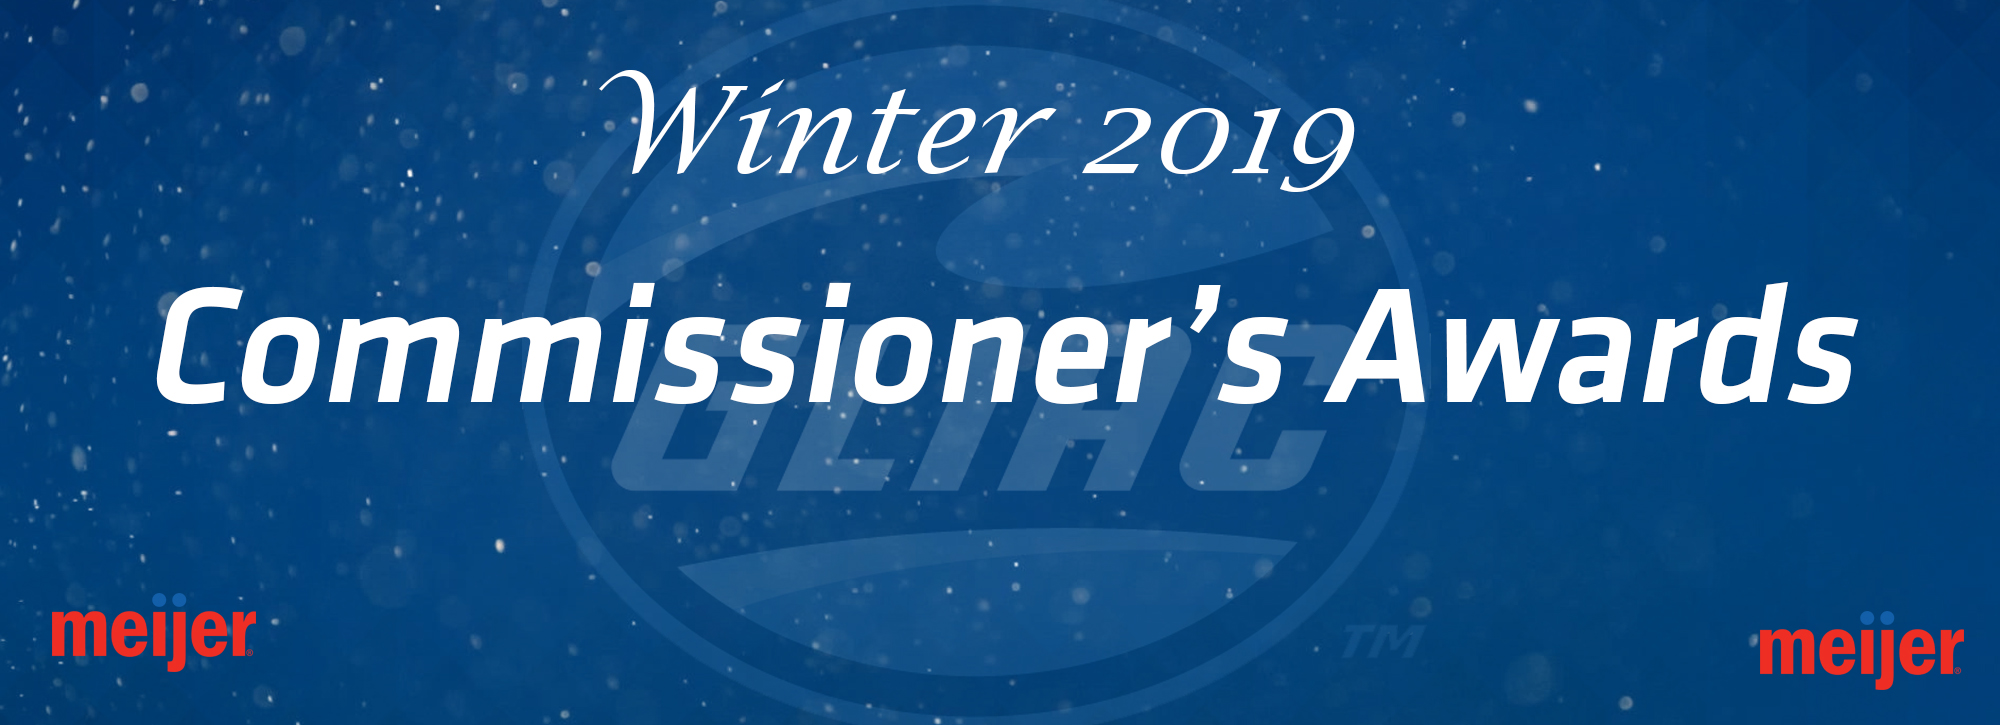 GLIAC announces Winter 2019 Commissioner's Awards